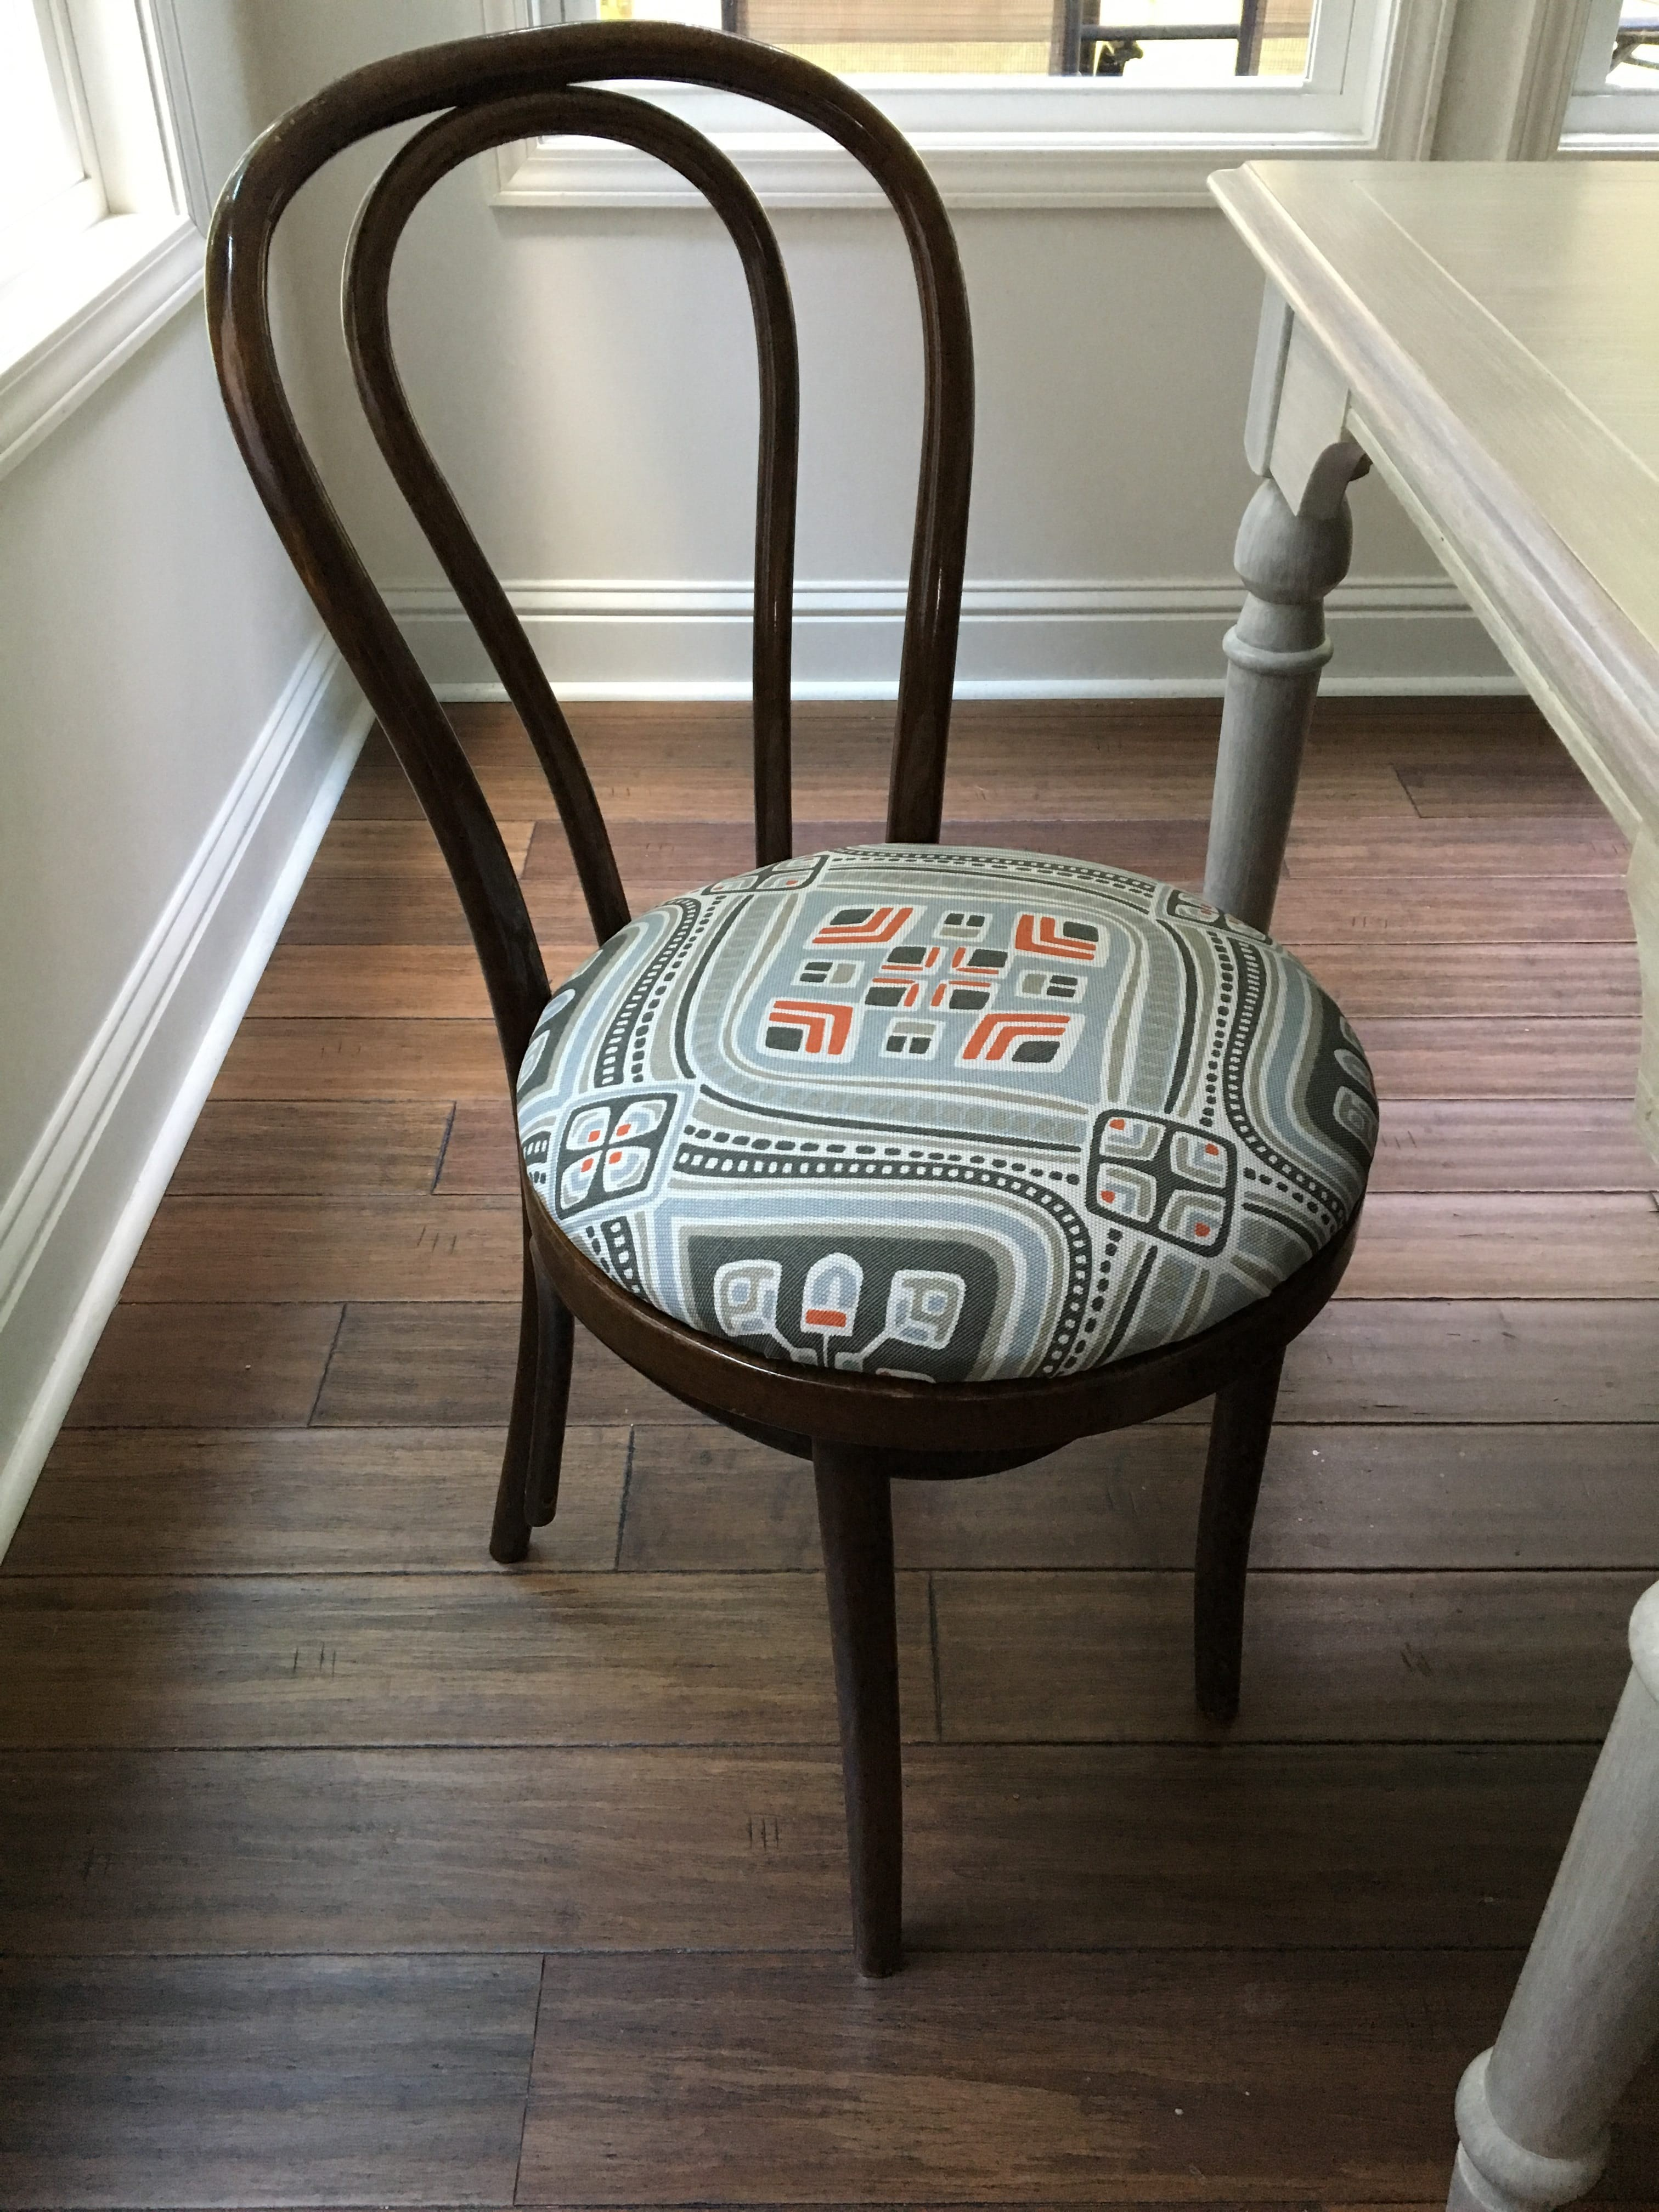 upholstering a chair seat cushion small scale upholstered dining chairs no sew upholstery tutorial learn how to re